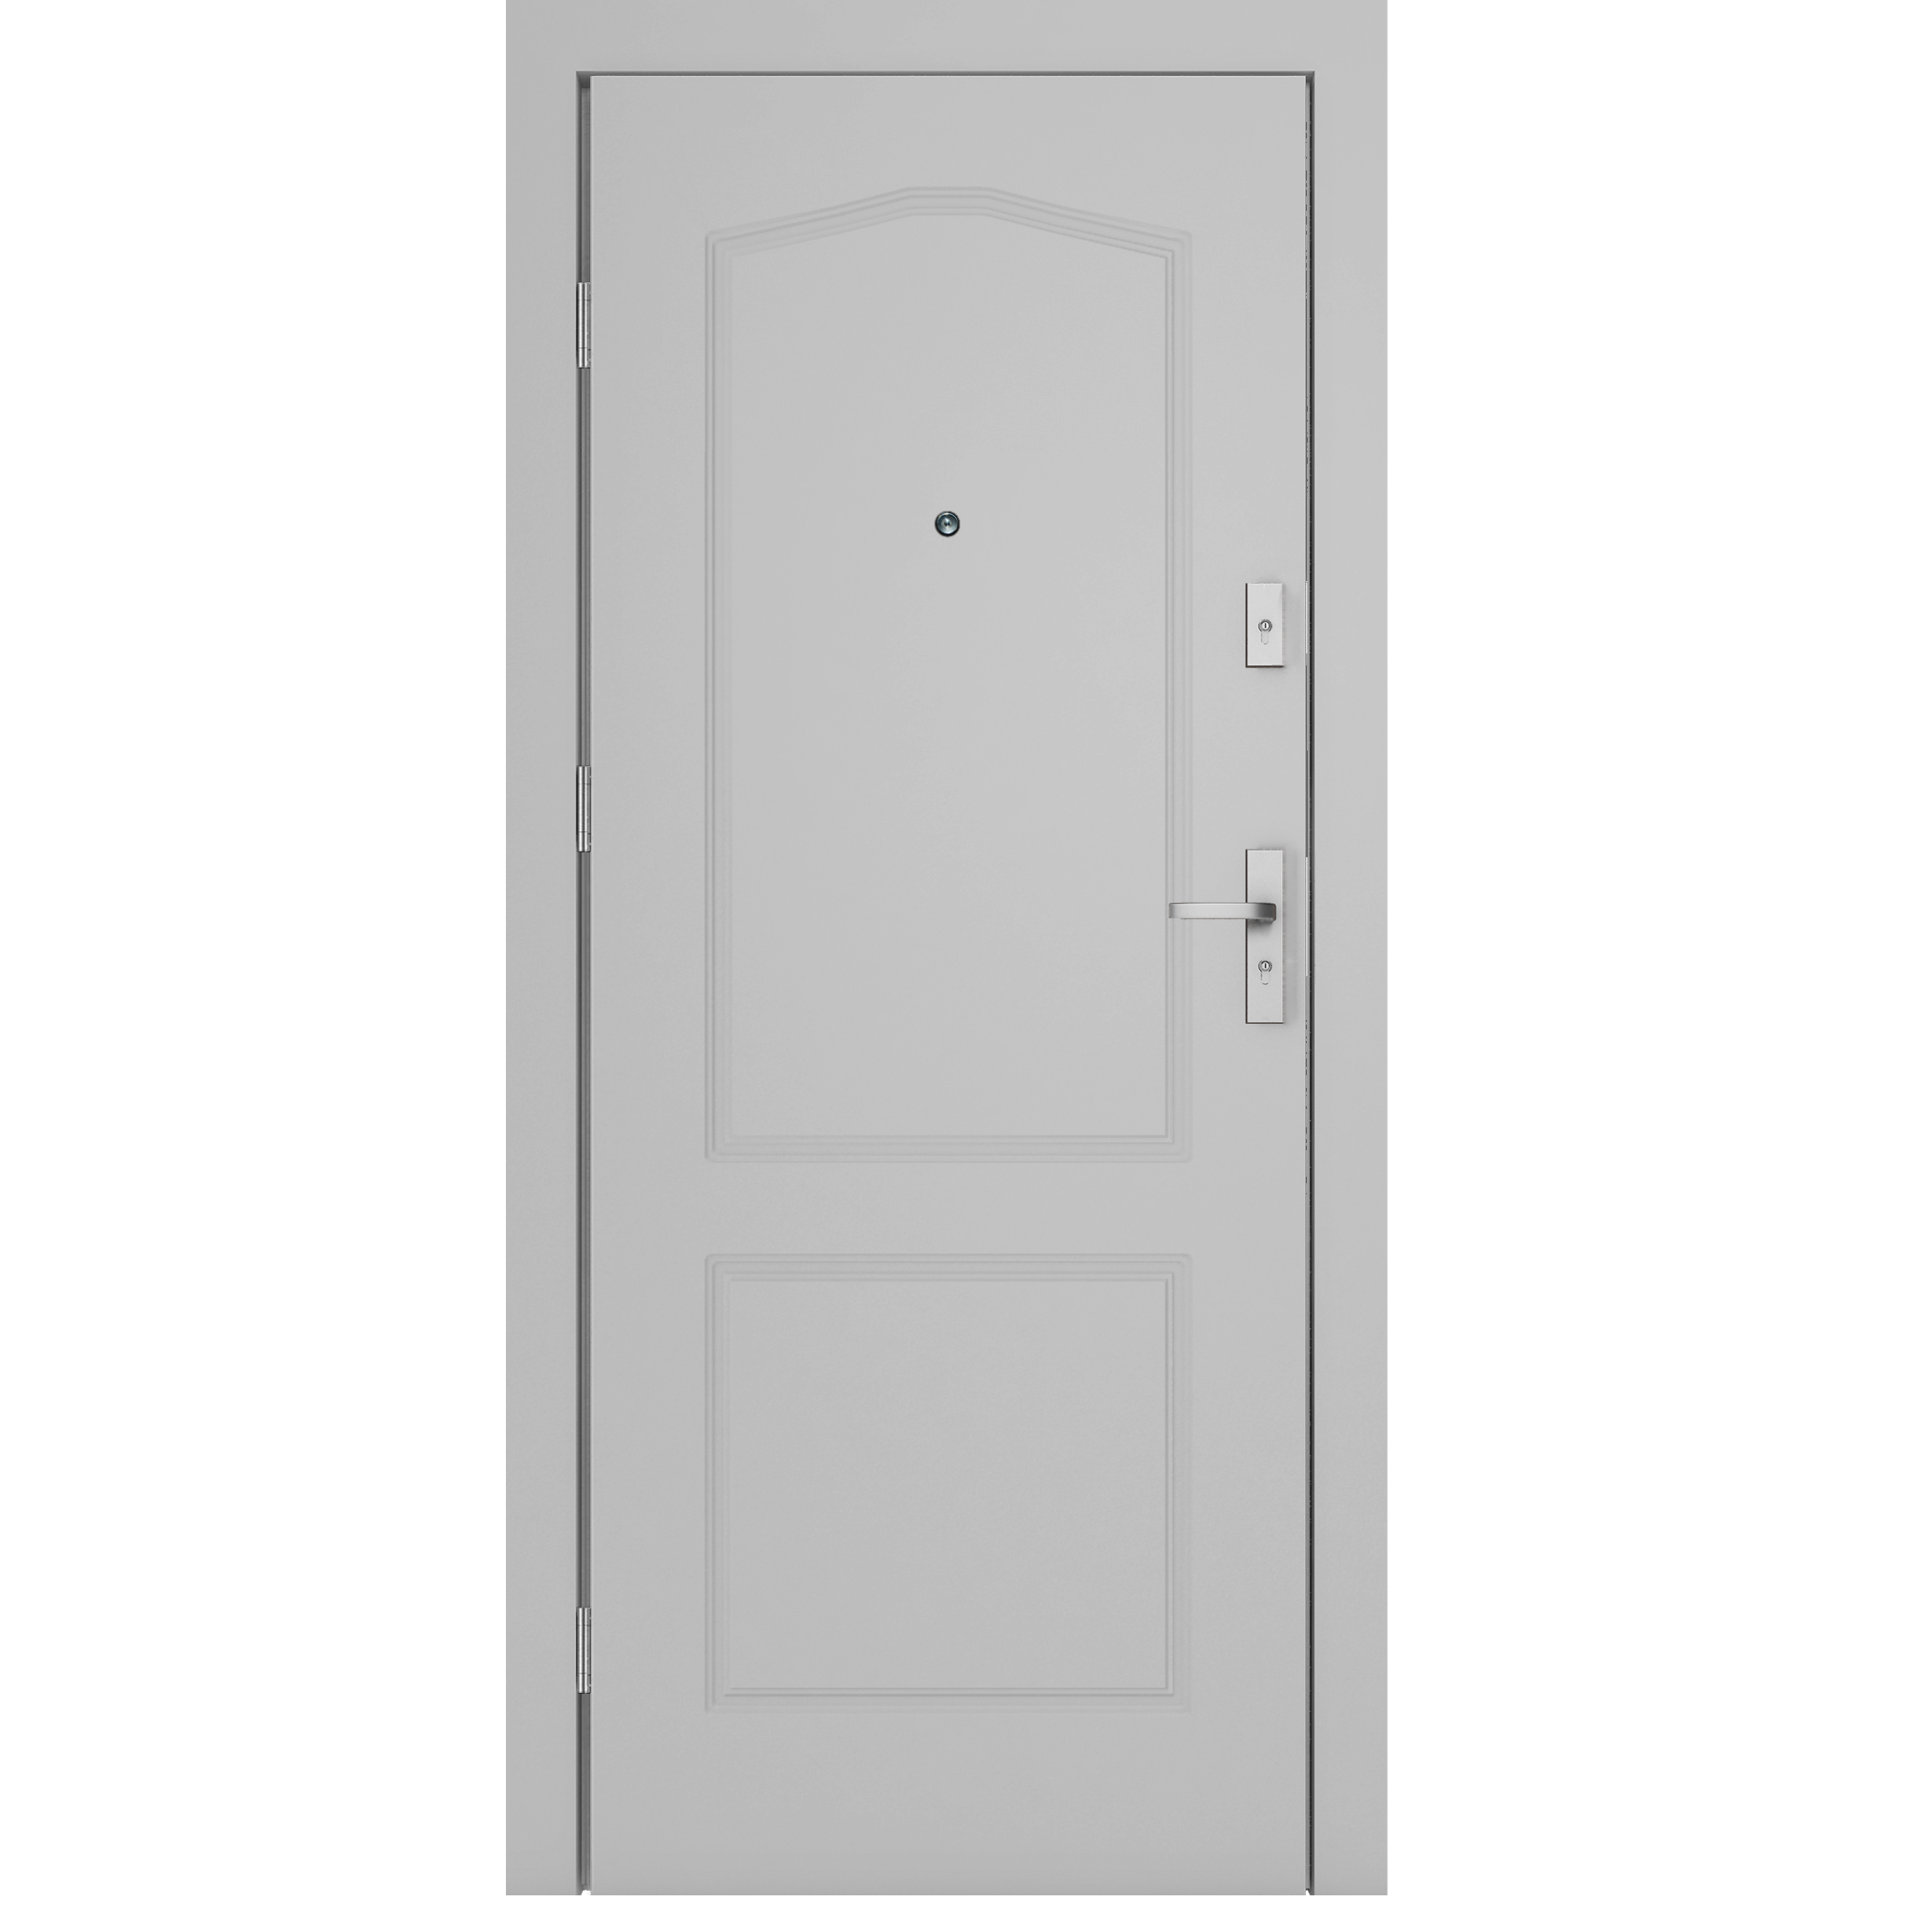 Entrance door tower interdoor di moda kioto for Entrance doors